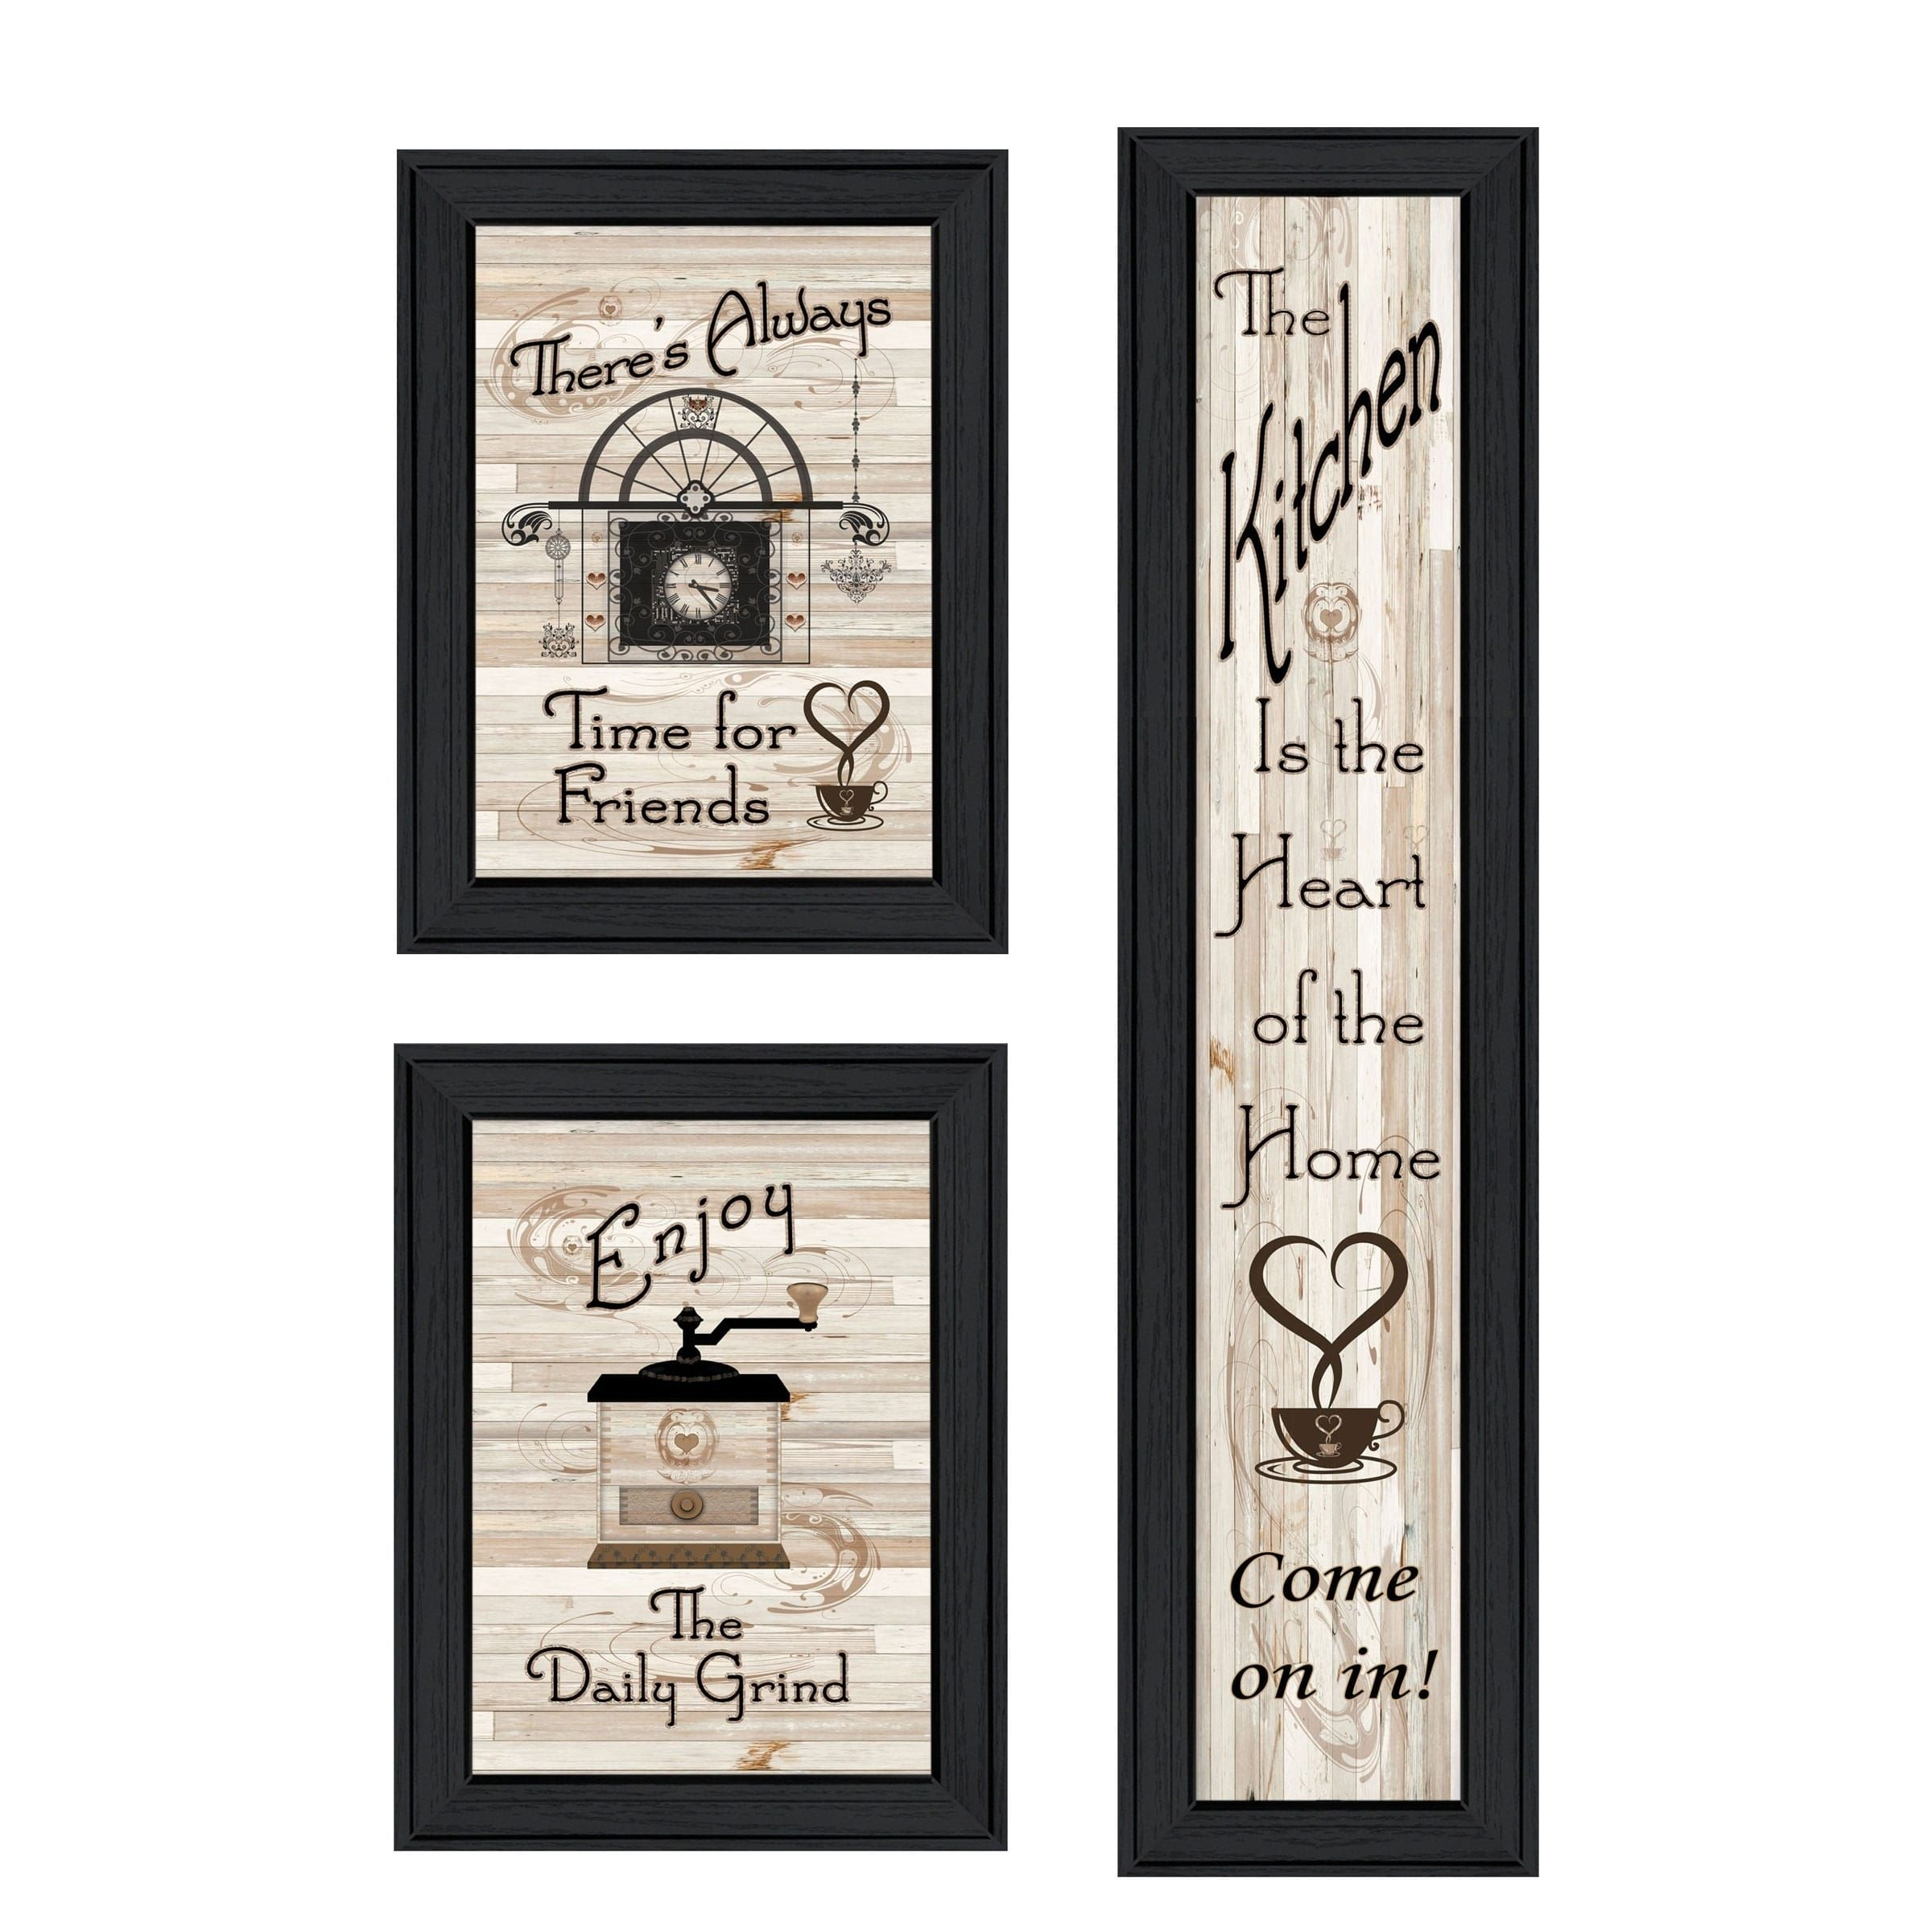 The Kitchen Collection I 3 Piece Vignette By Millwork Black Frame Traditional Quotes And Sayings 3 Piece Trendy Decor Kitchen Collection Framed Wall Art